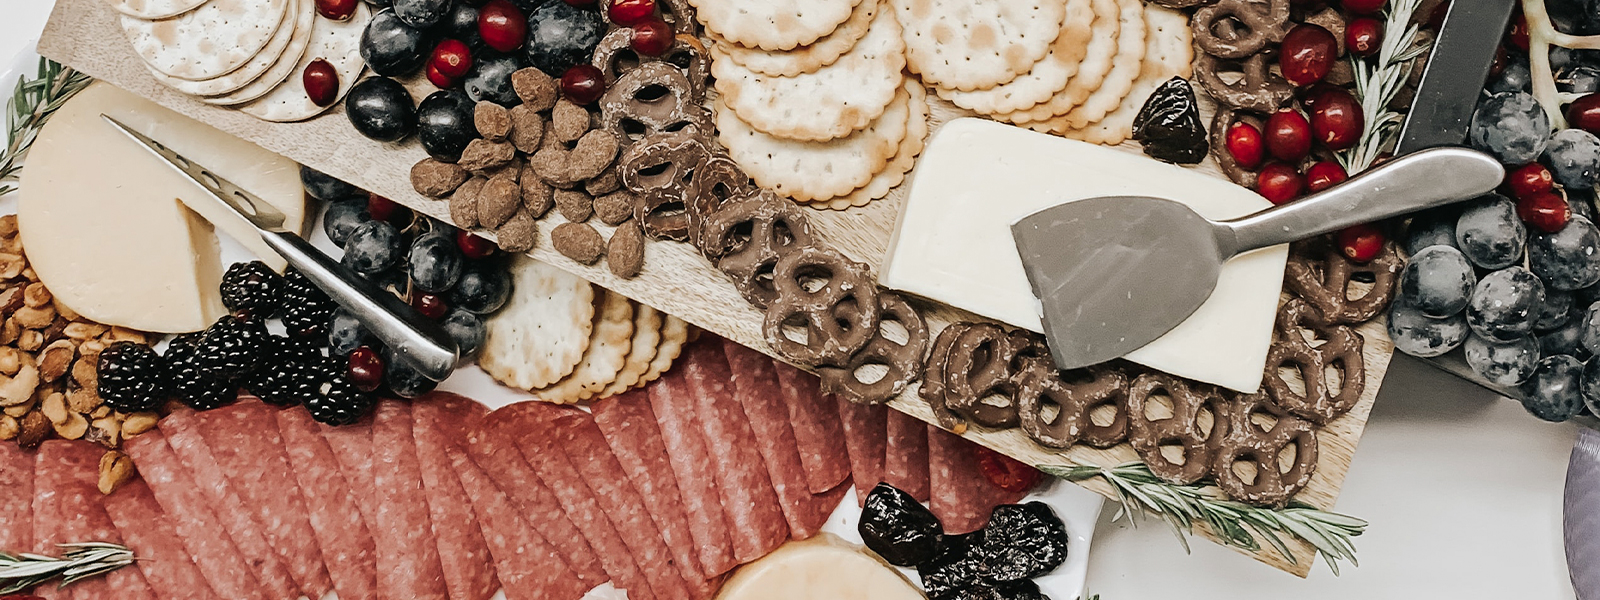 Alexian: Our Guide to a Festive Charcuterie Board